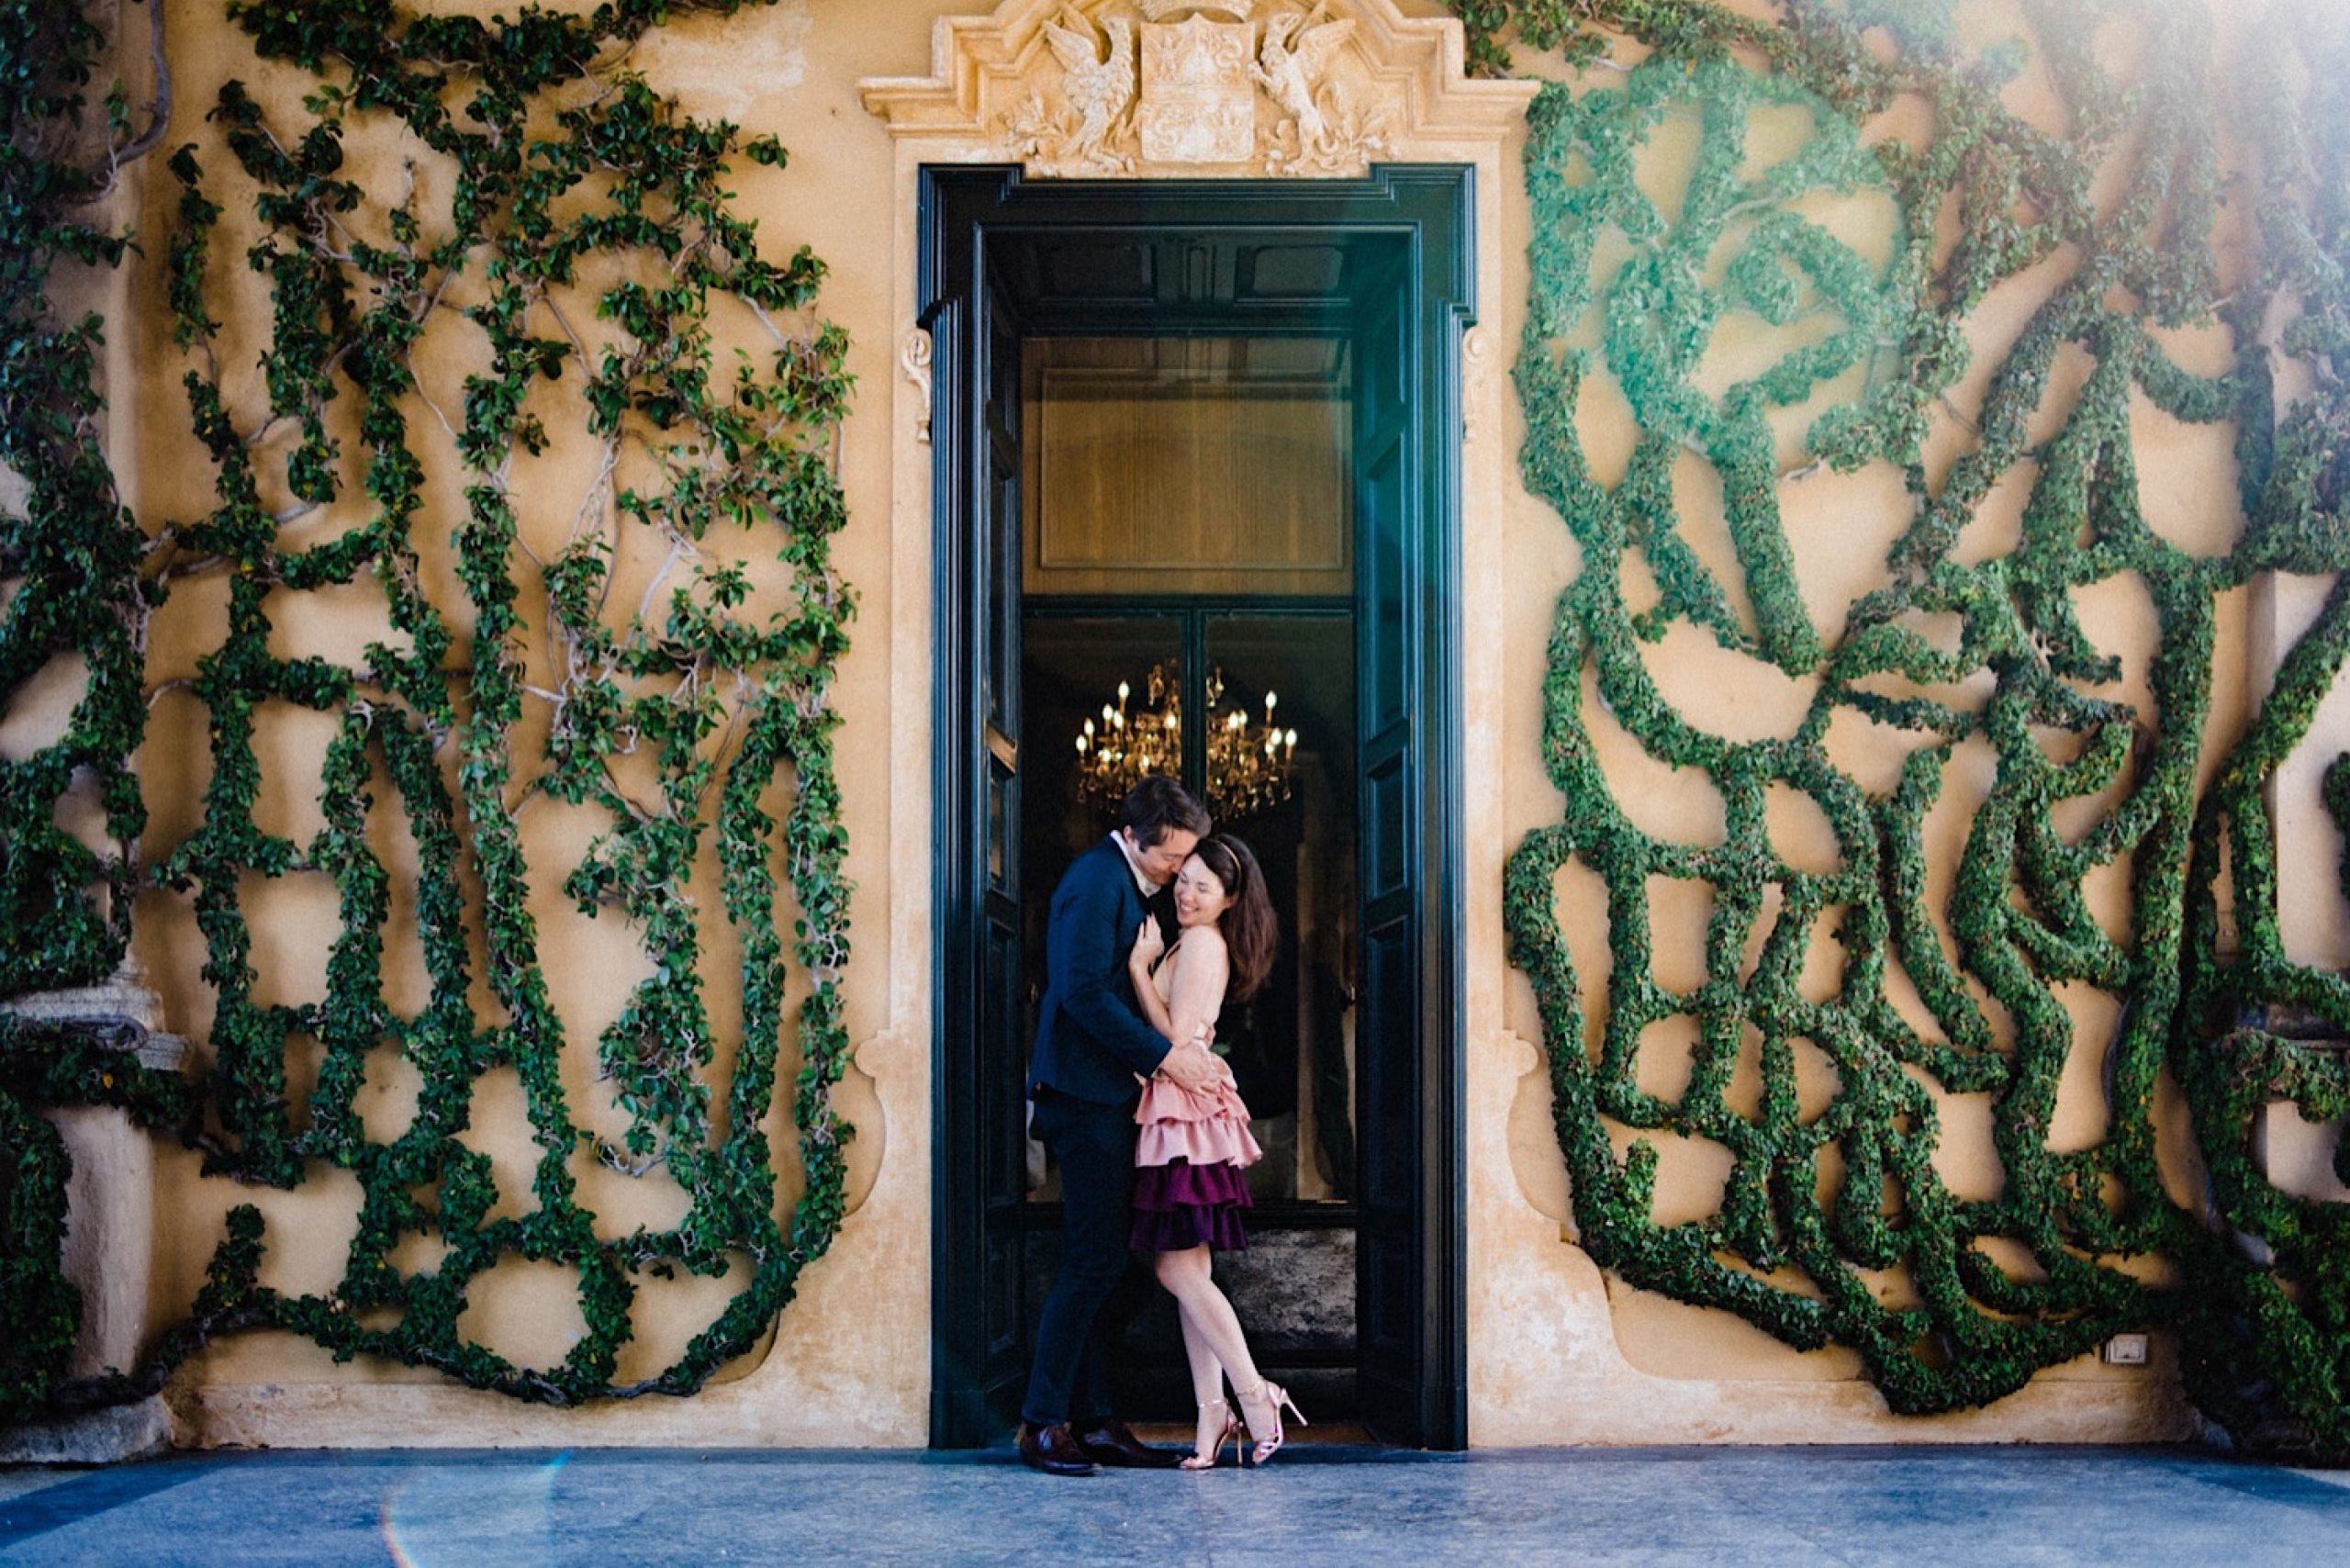 A wide shot of a couple standing in a doorway, the walls around it are covered by intricately patterned climbing hedges.